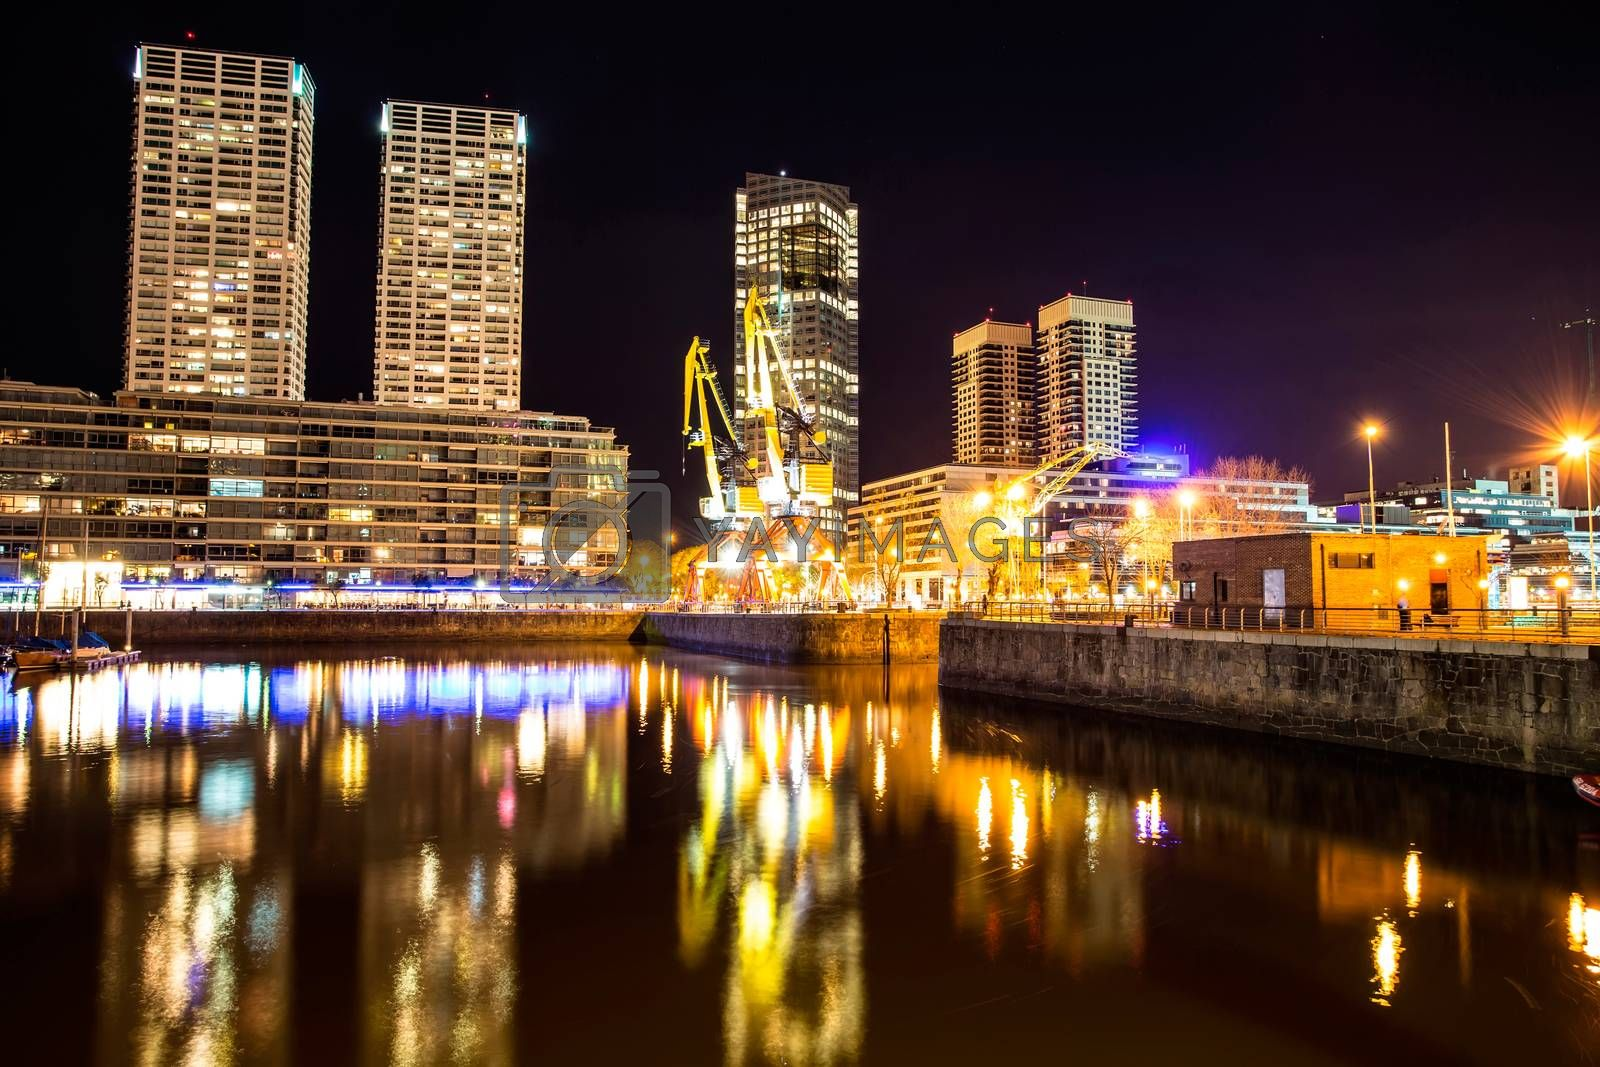 Puerto Madero in Buenos Aires at night		 by Spectral